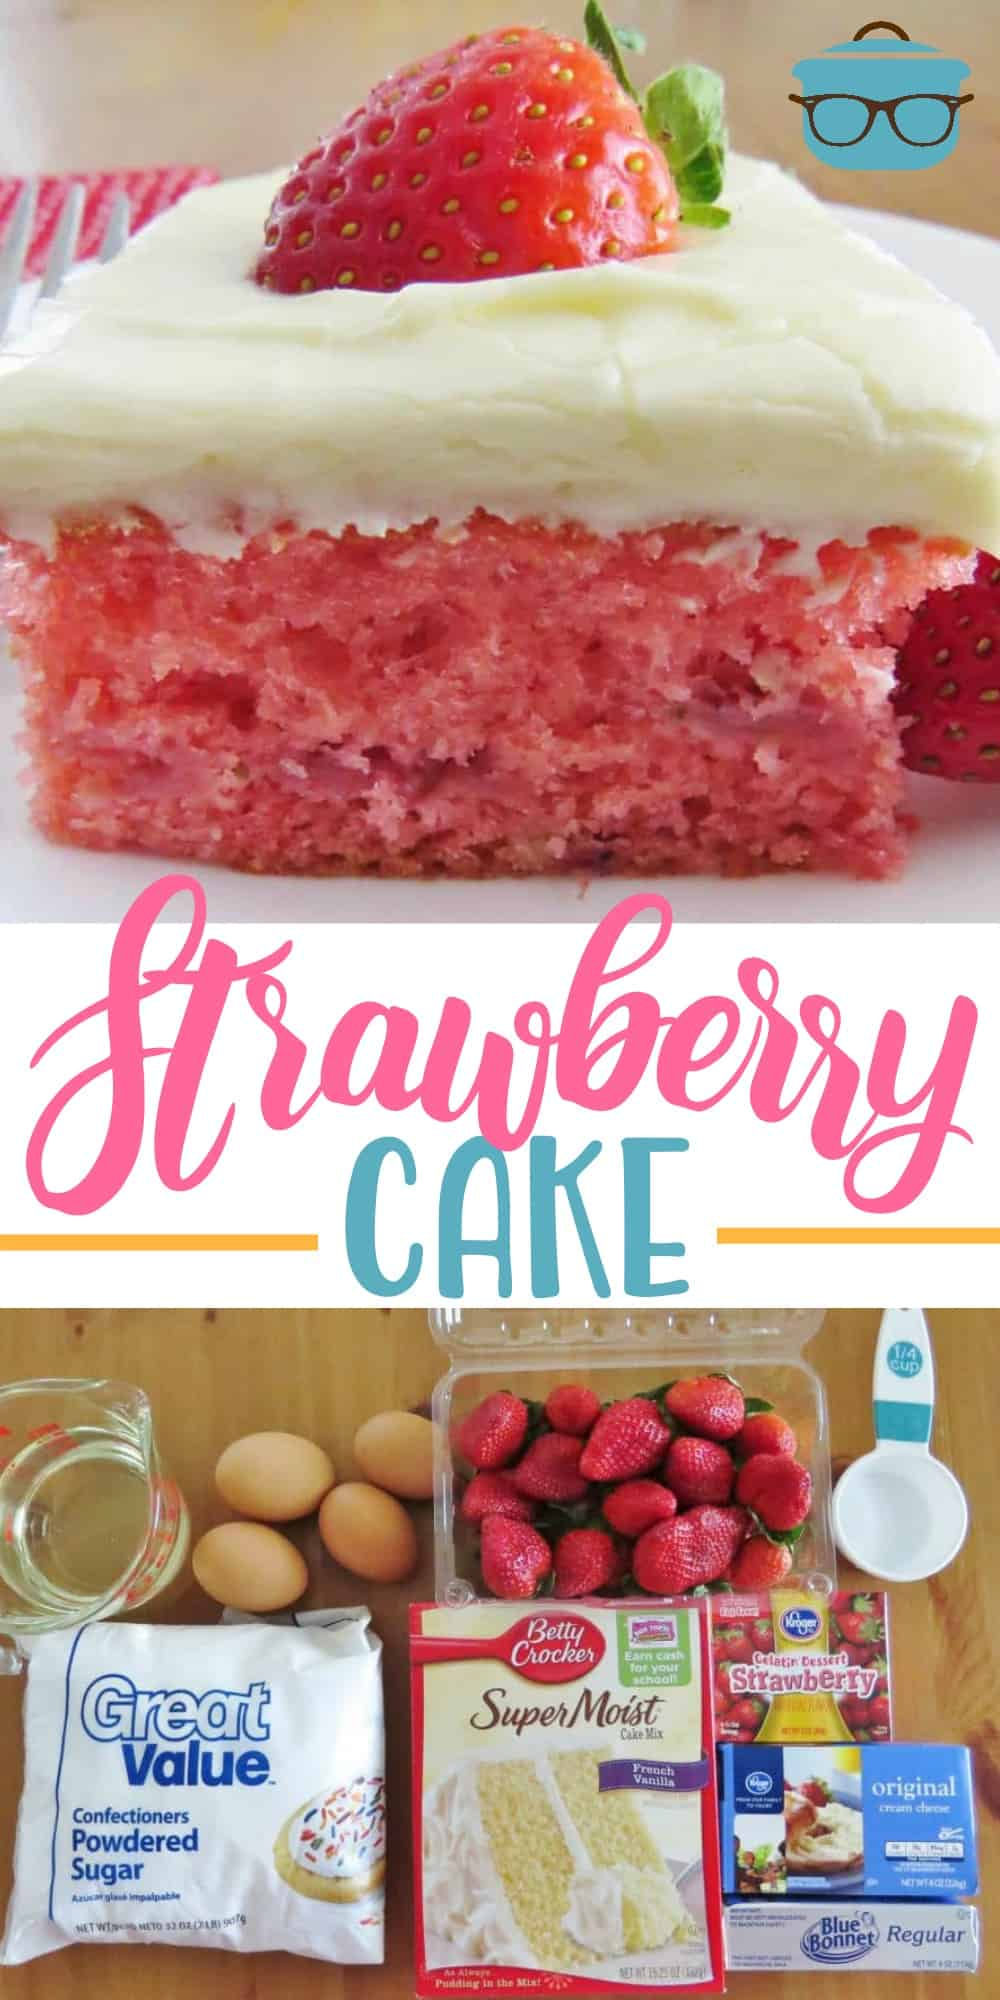 This Easy Fresh Strawberry Cake starts with a boxed cake mix, strawberry jell-o, fresh strawberries and is topped with cream cheese frosting! #strawberrycake #dessert